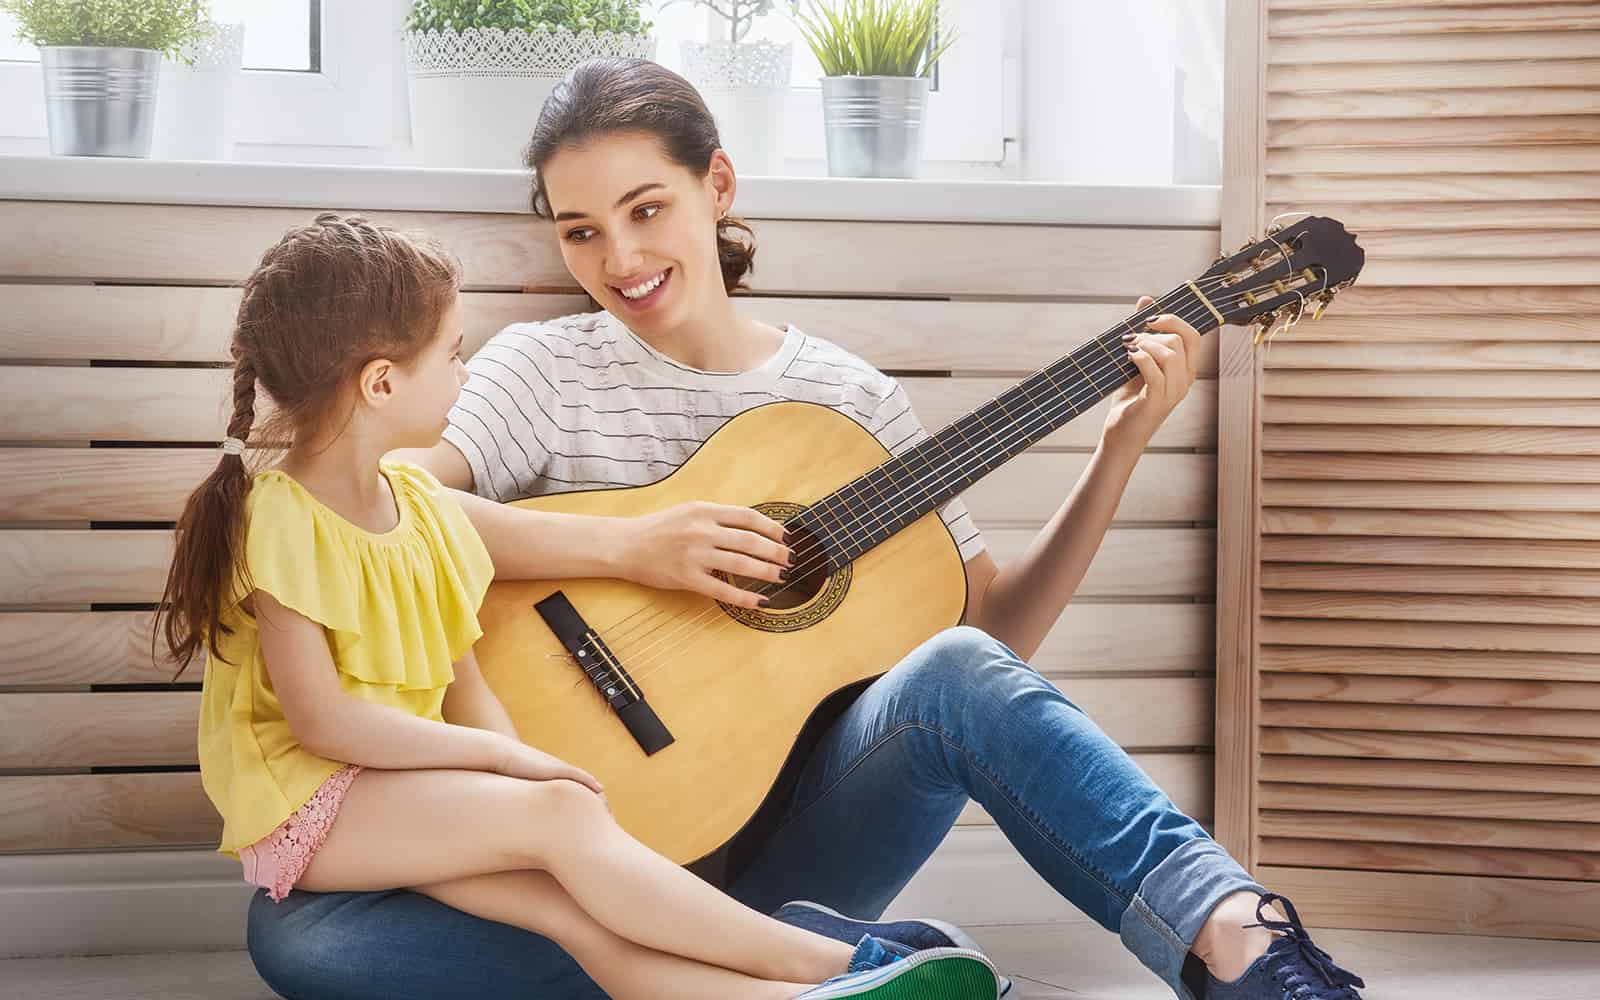 A mother plays guitar for her daughter